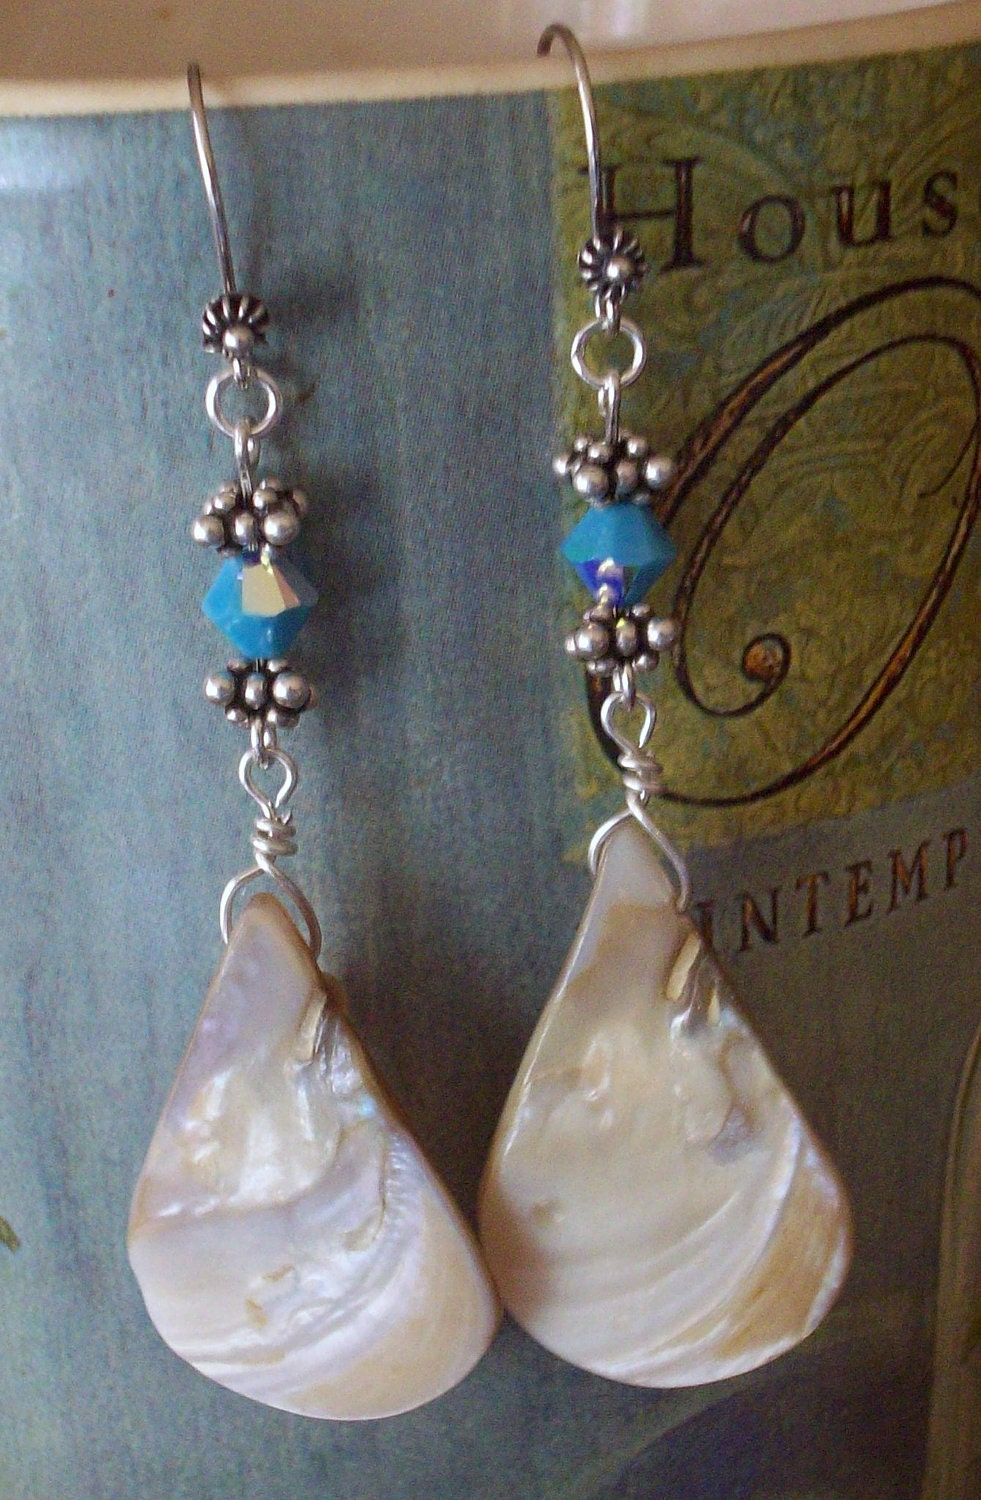 Sale 30% Off-Unique large Shell Teardrop and Swarovski Crystal Earrings